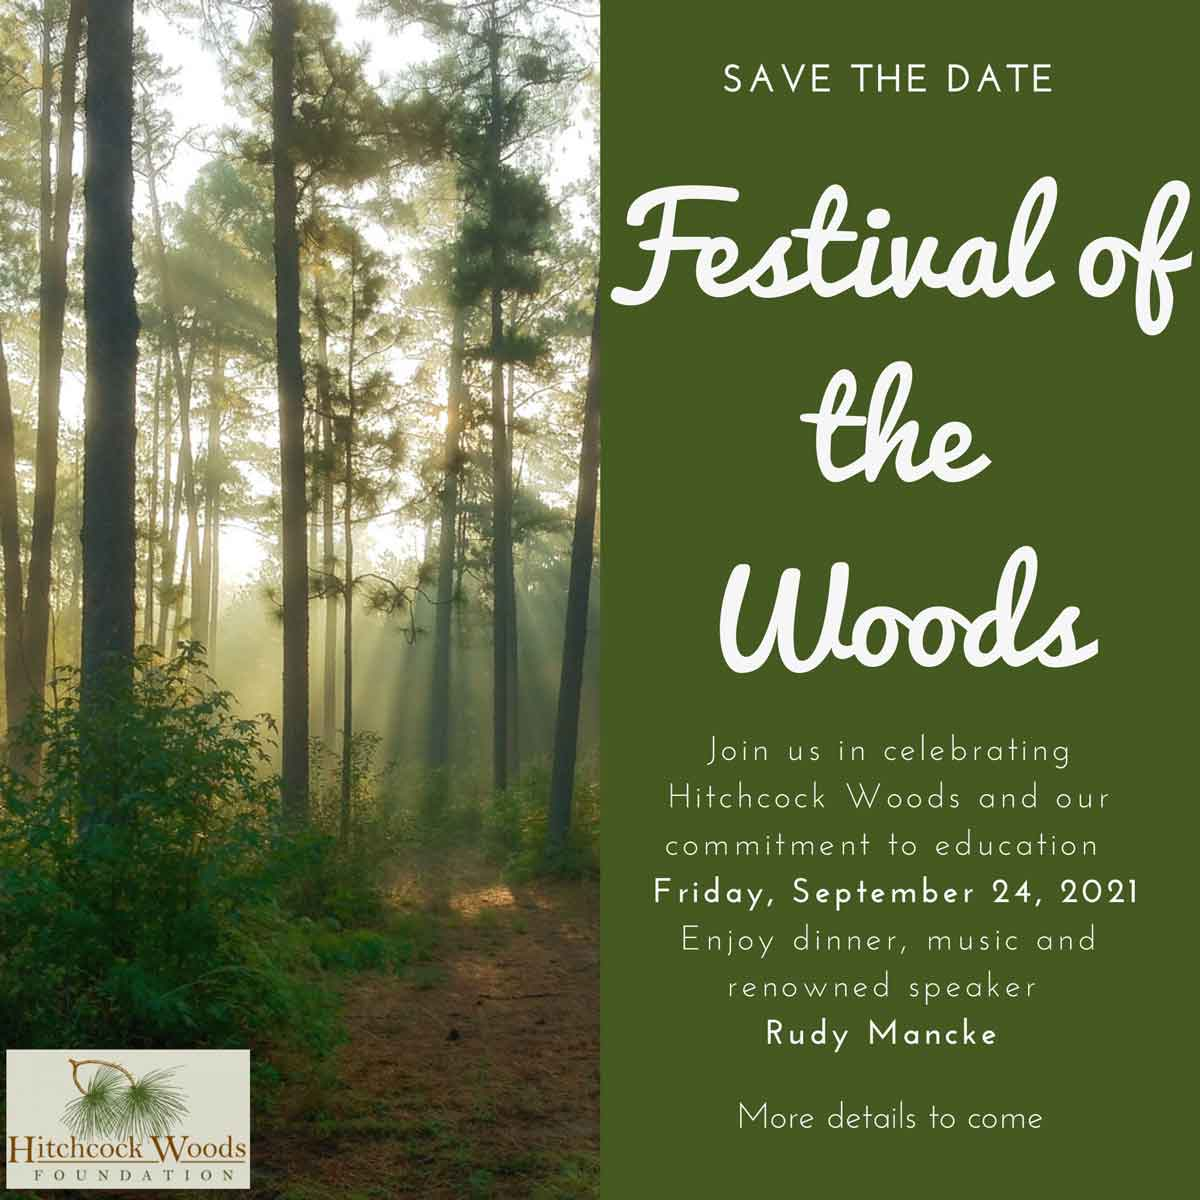 Save the Date - Festival of the Woods